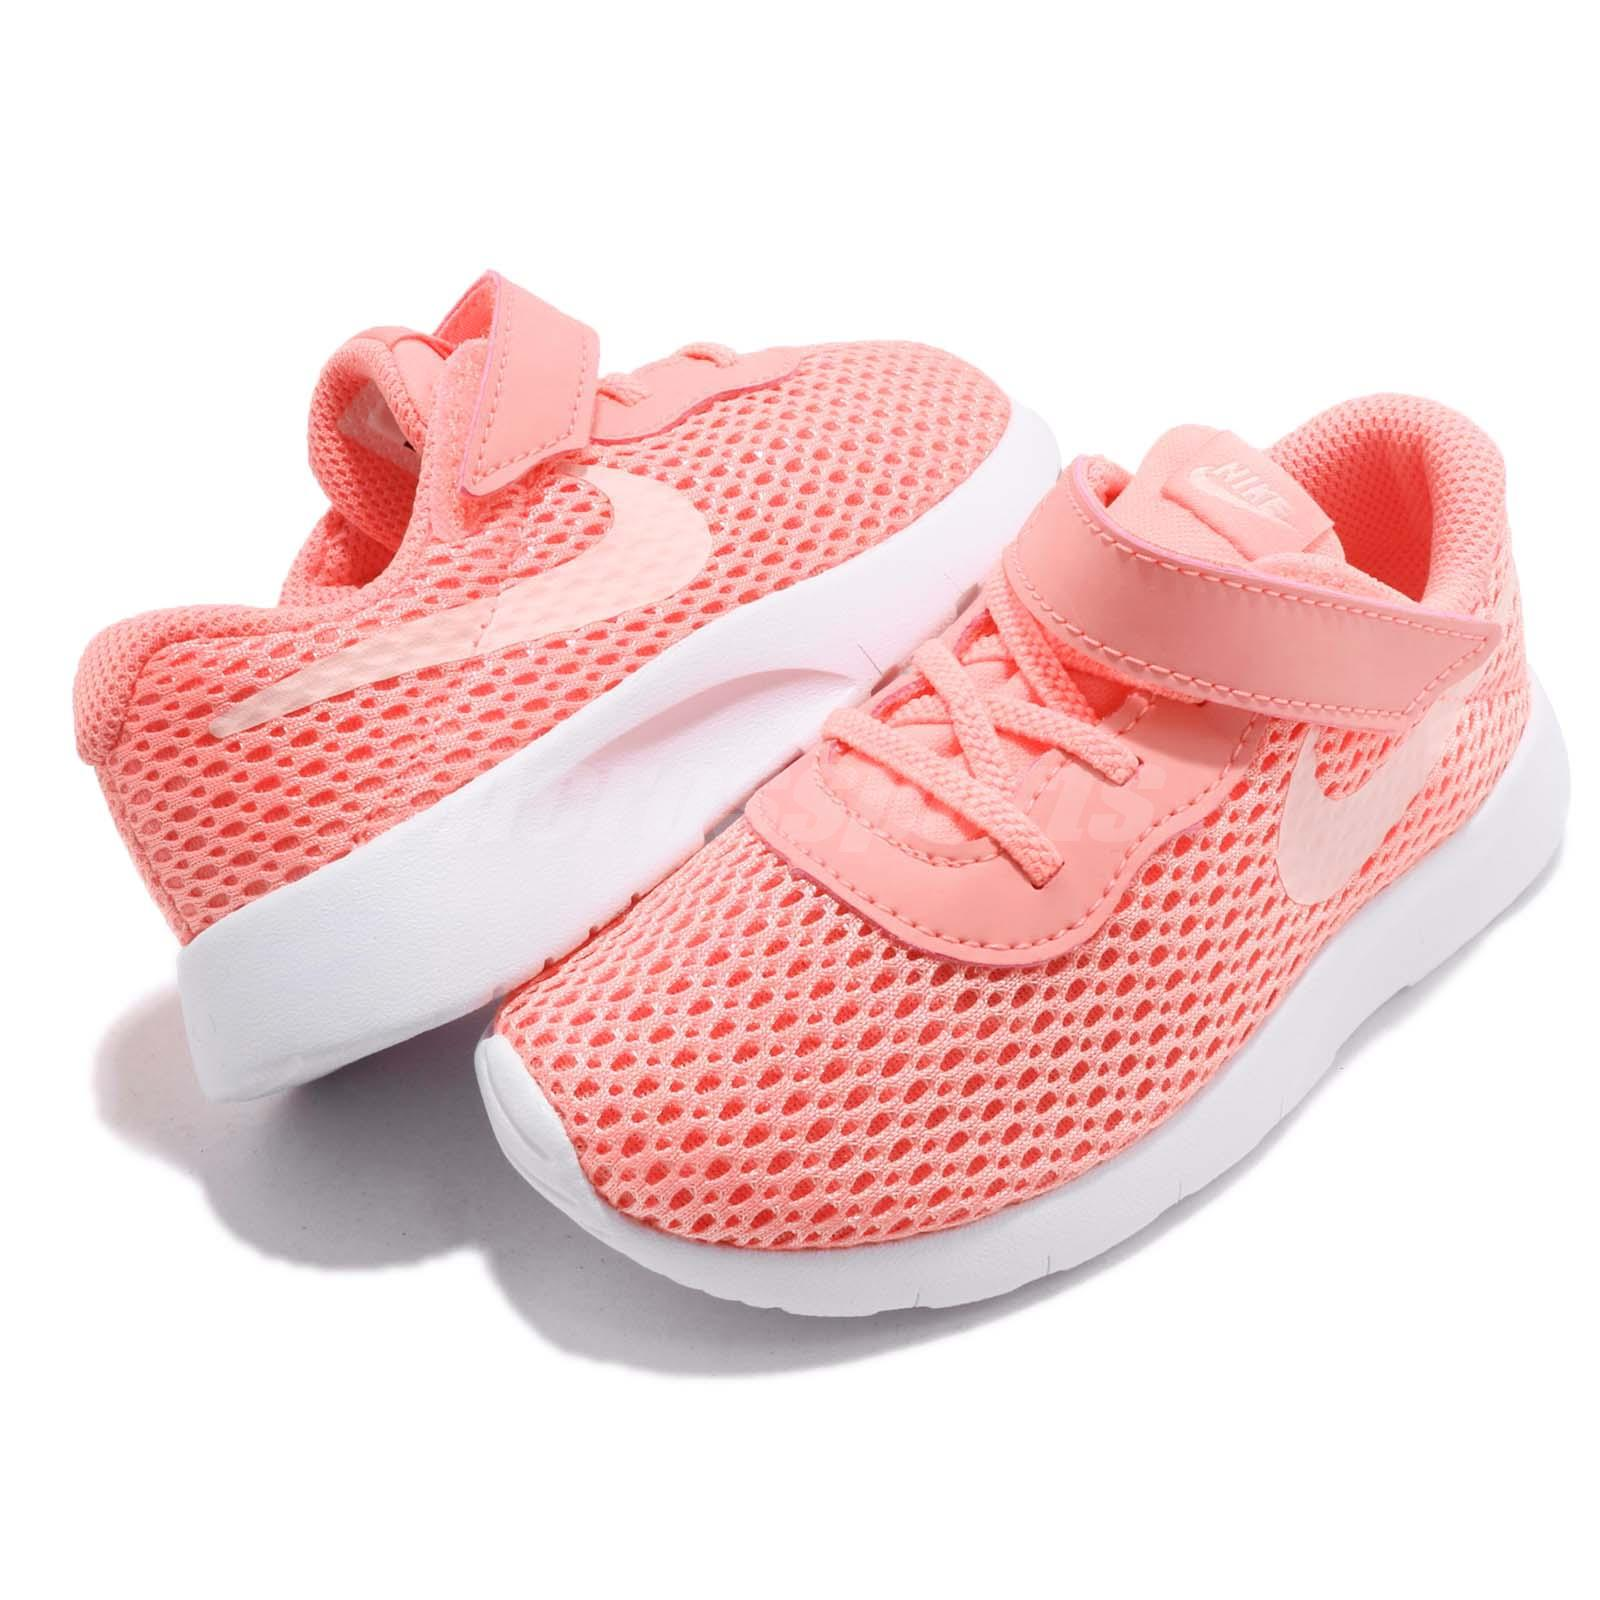 Nike Tanjun TDV Light Atomic Pink Toddler Infant Running Sho